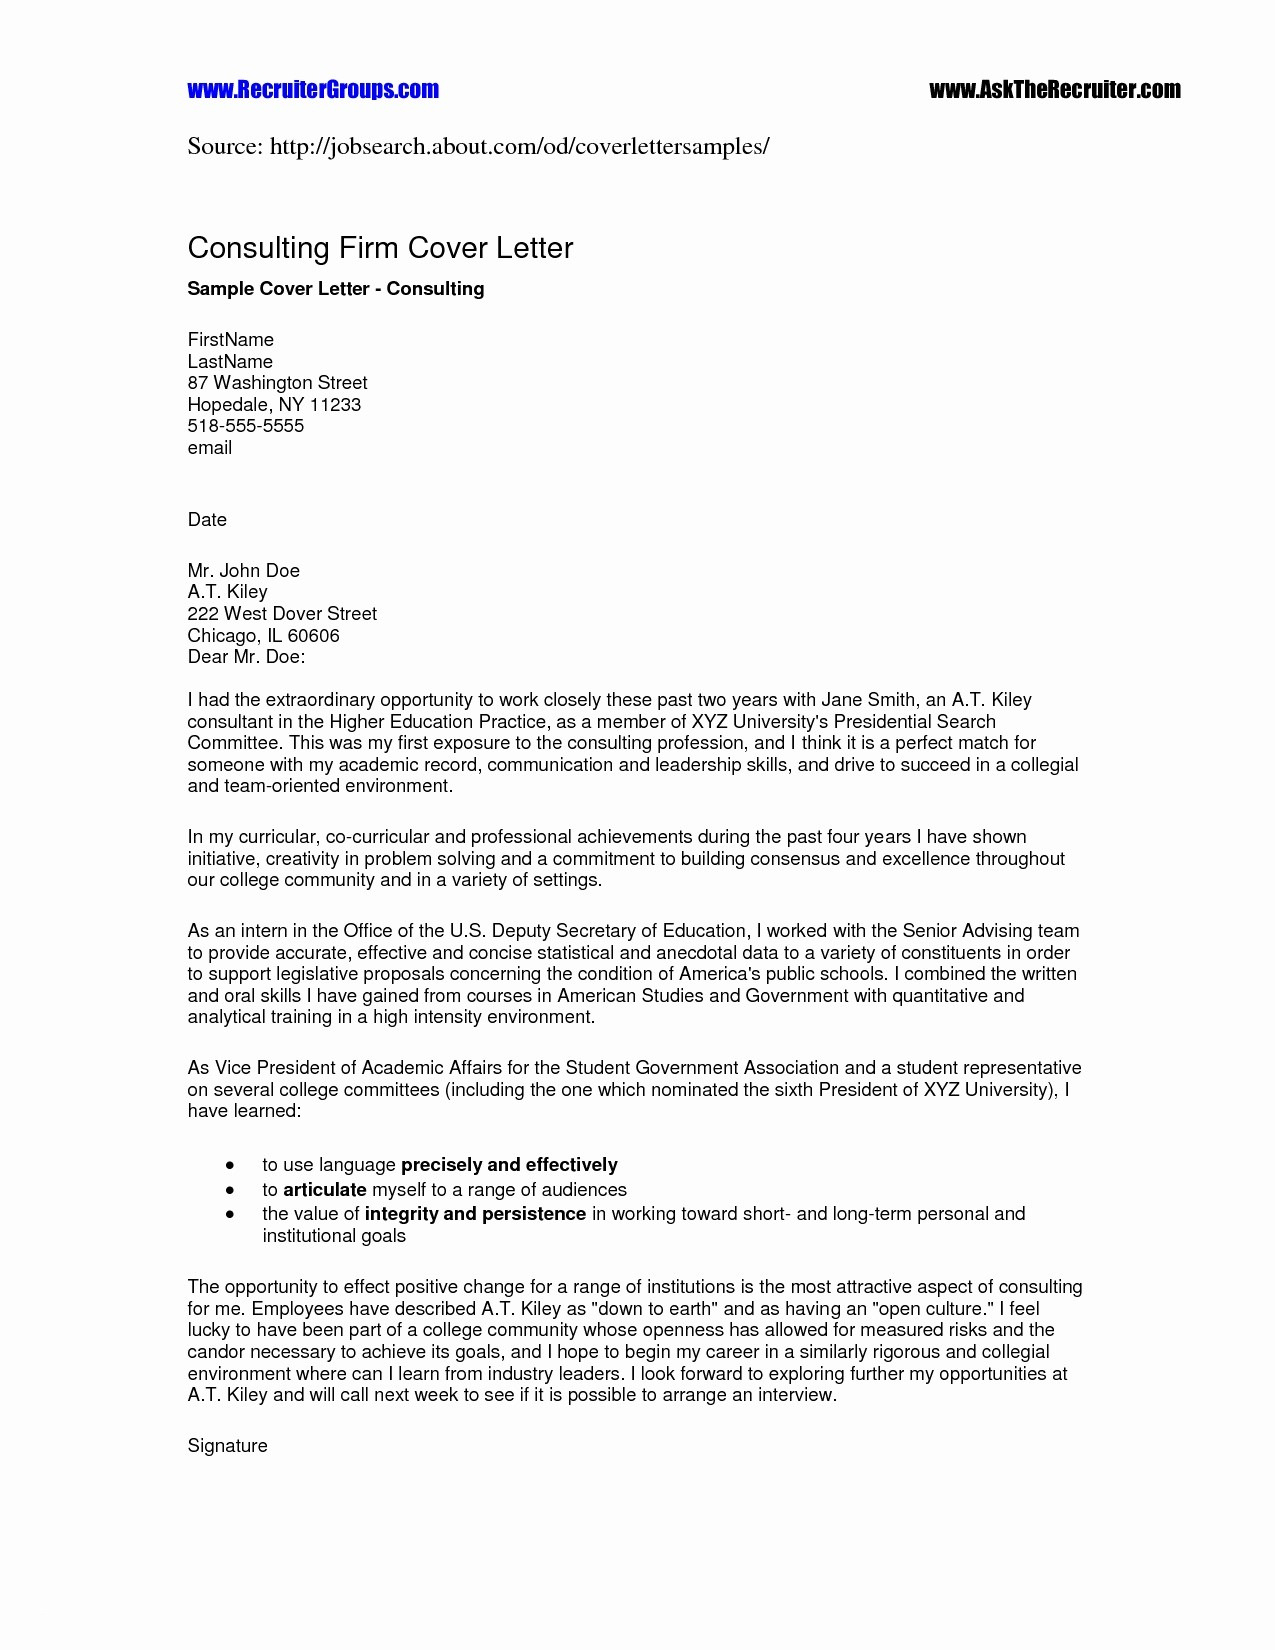 Sales associate Cover Letter Template - Cover Letter for Sales associate Job